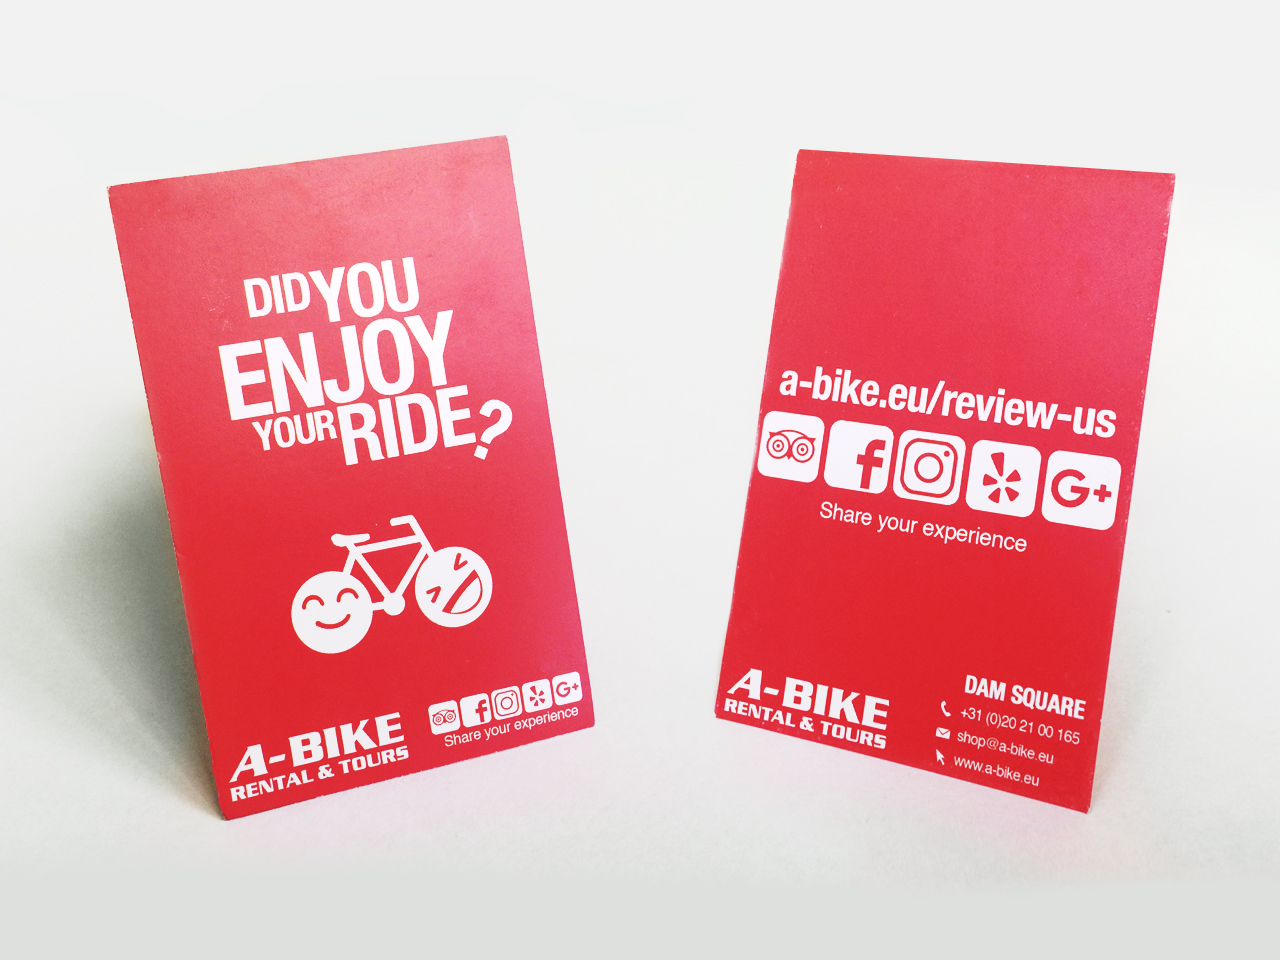 Abike comment card